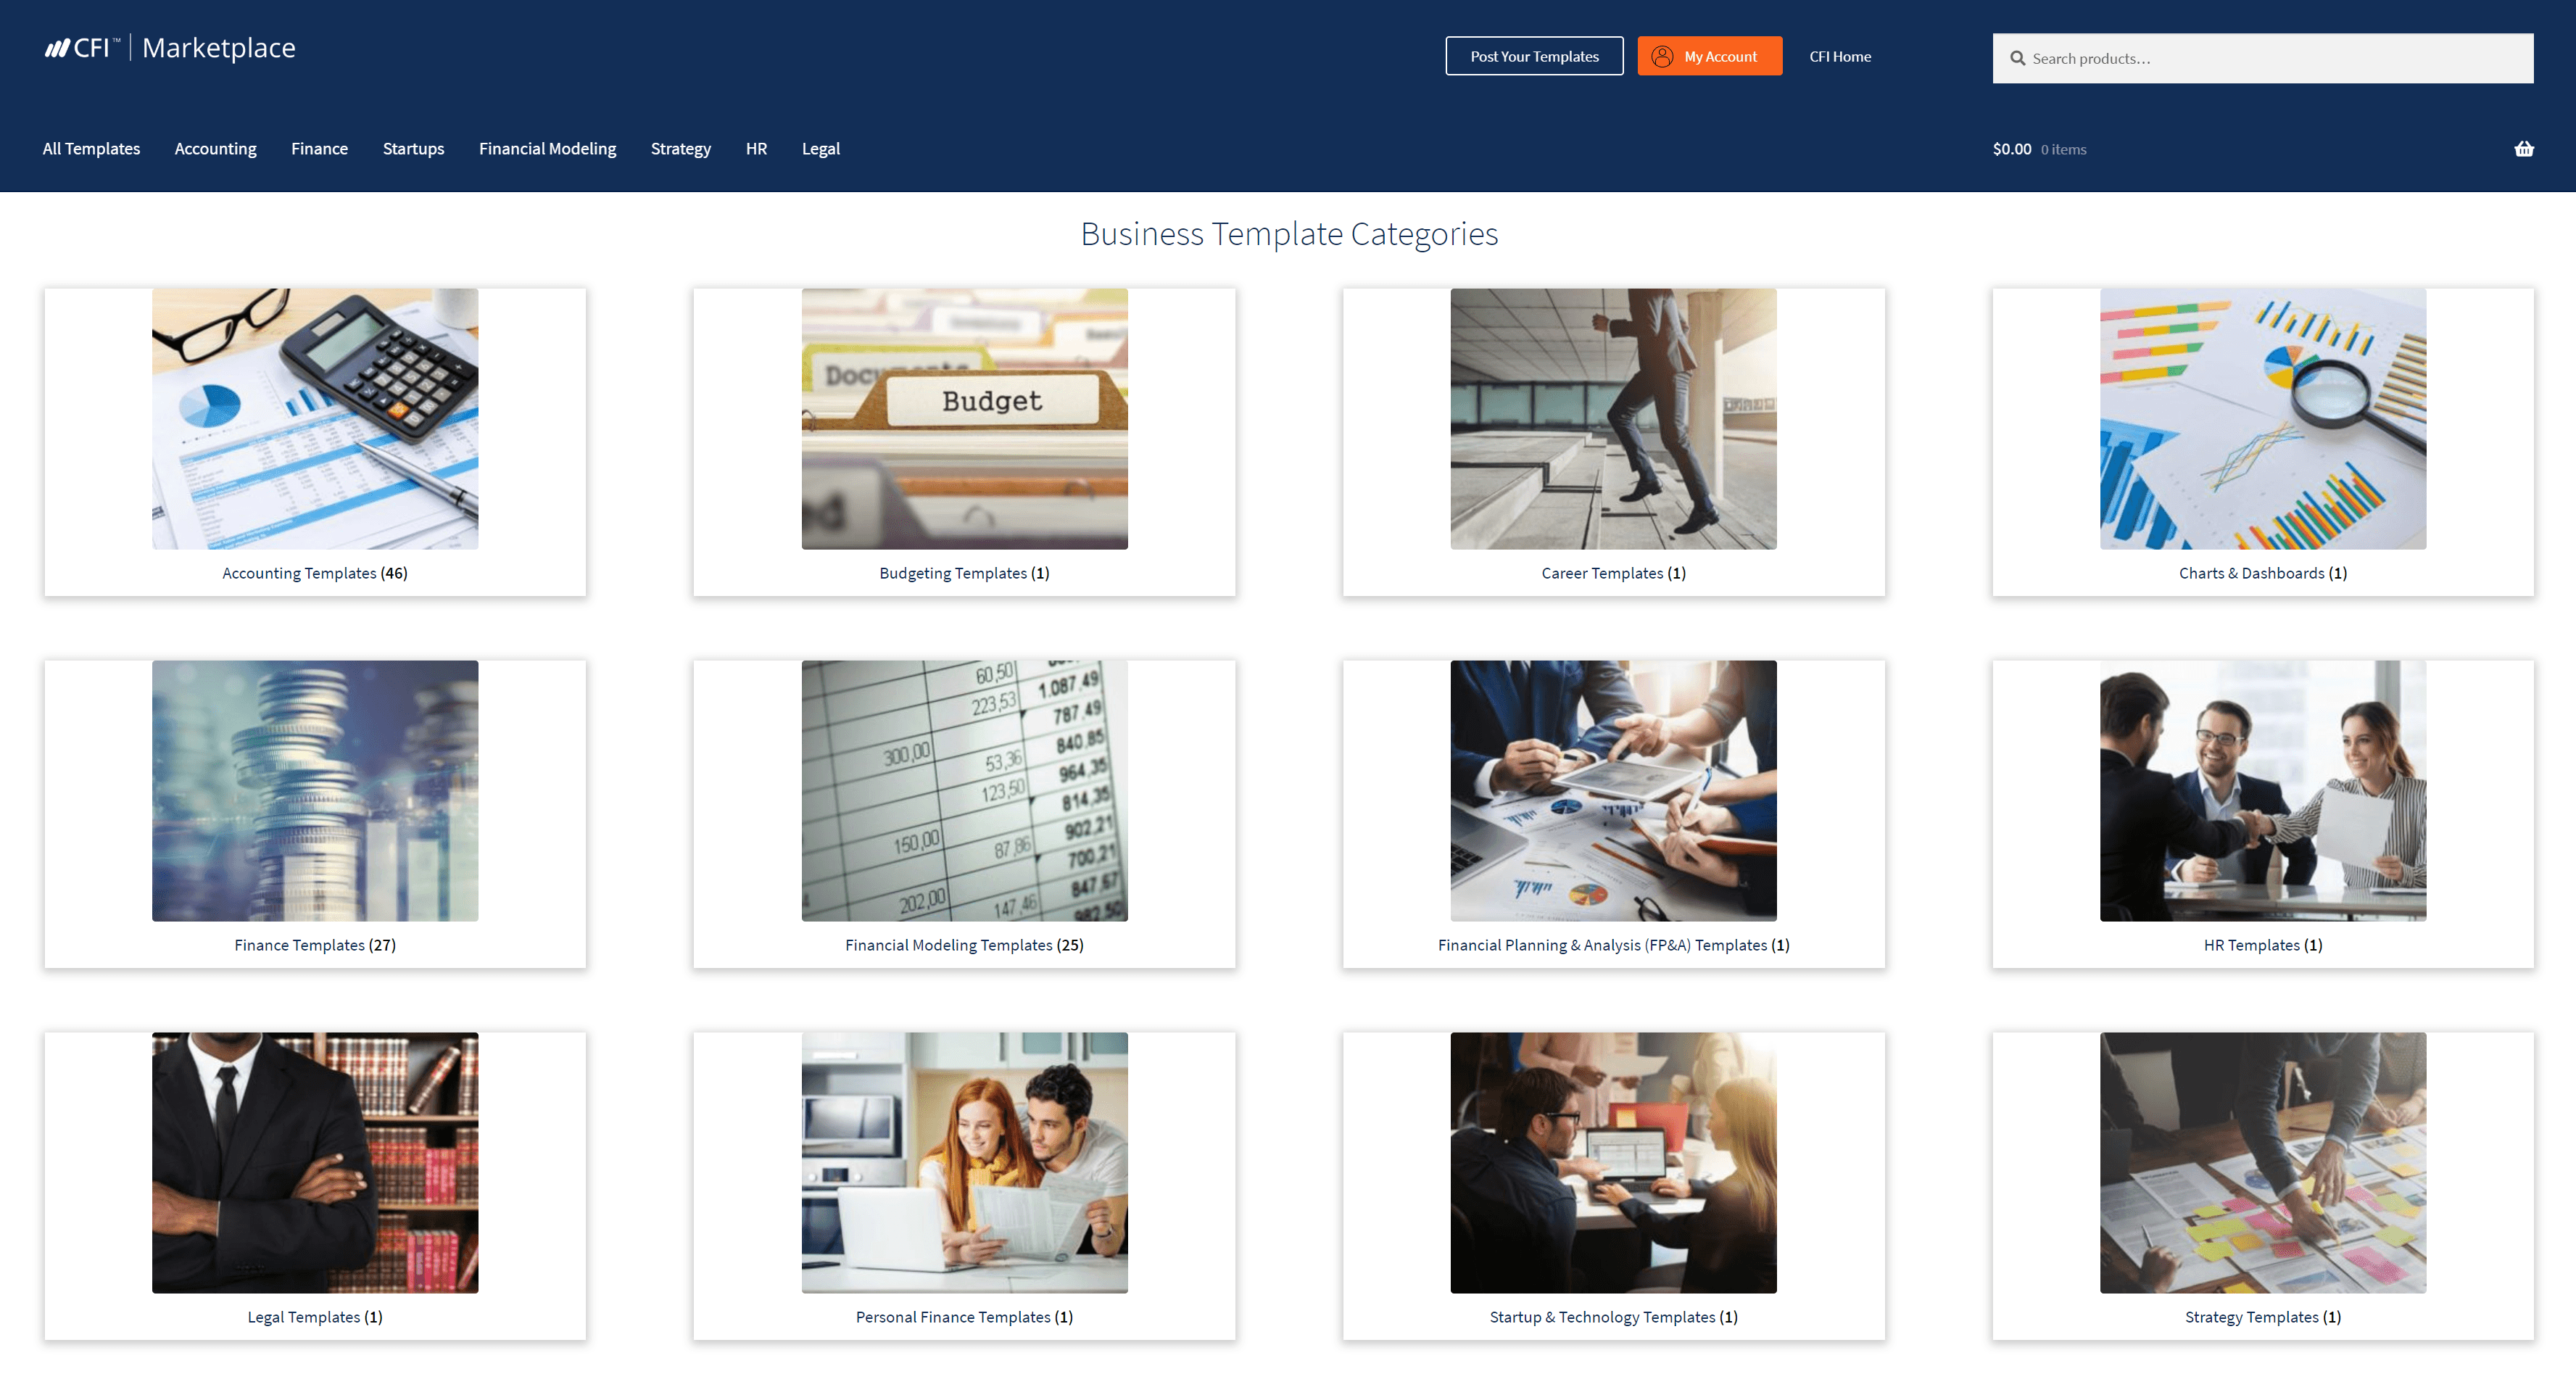 CFI Business Templates Marketplace